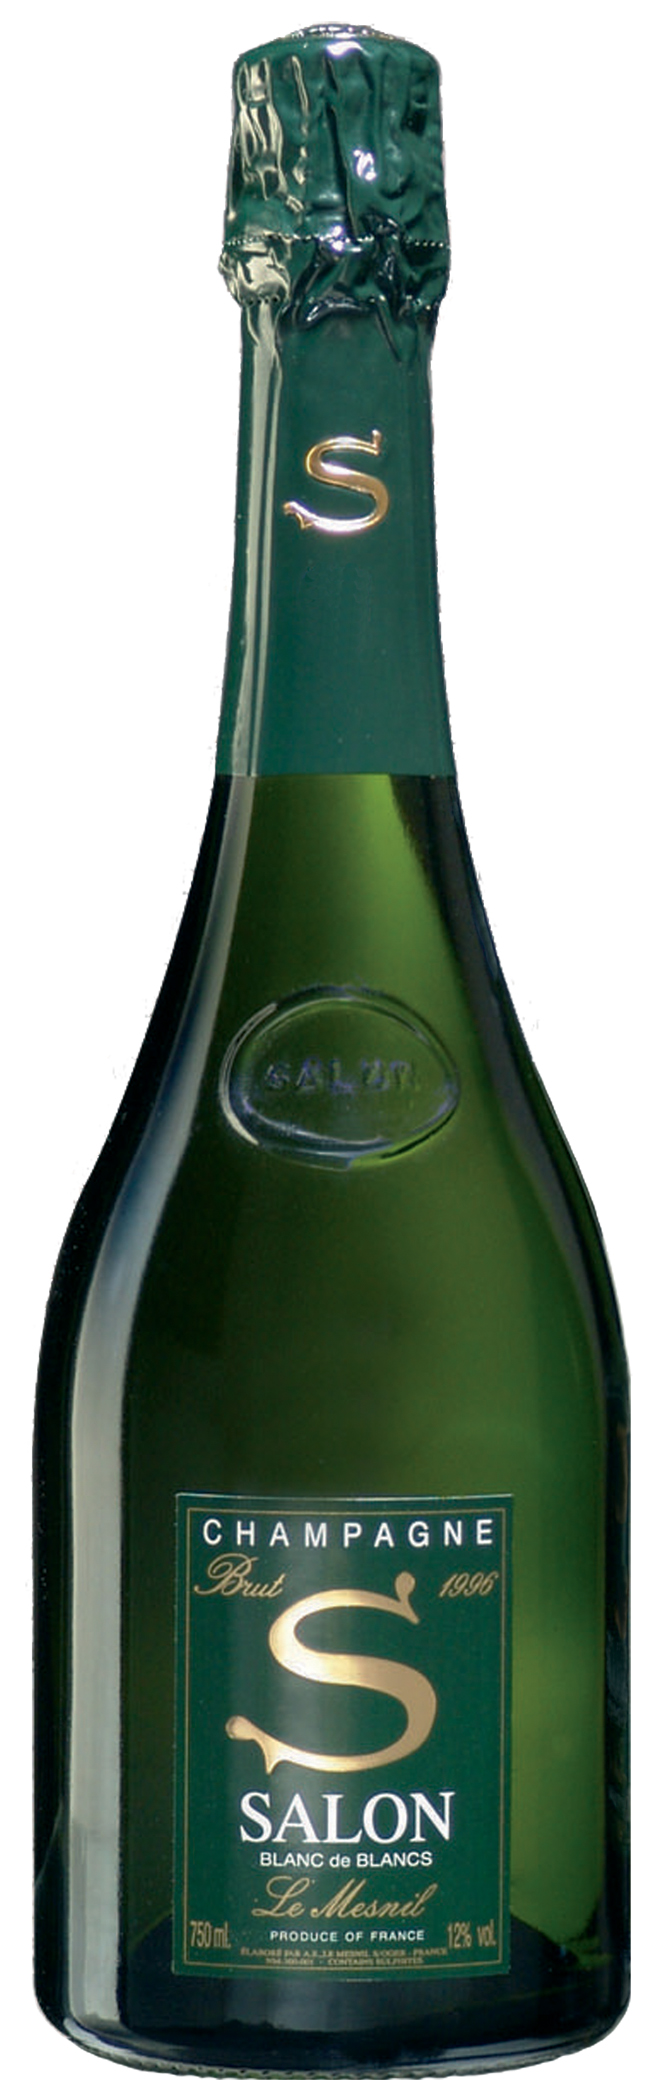 "Salon Brut Le Mesnil: ""The Champagne Lovers\' Champagne"""